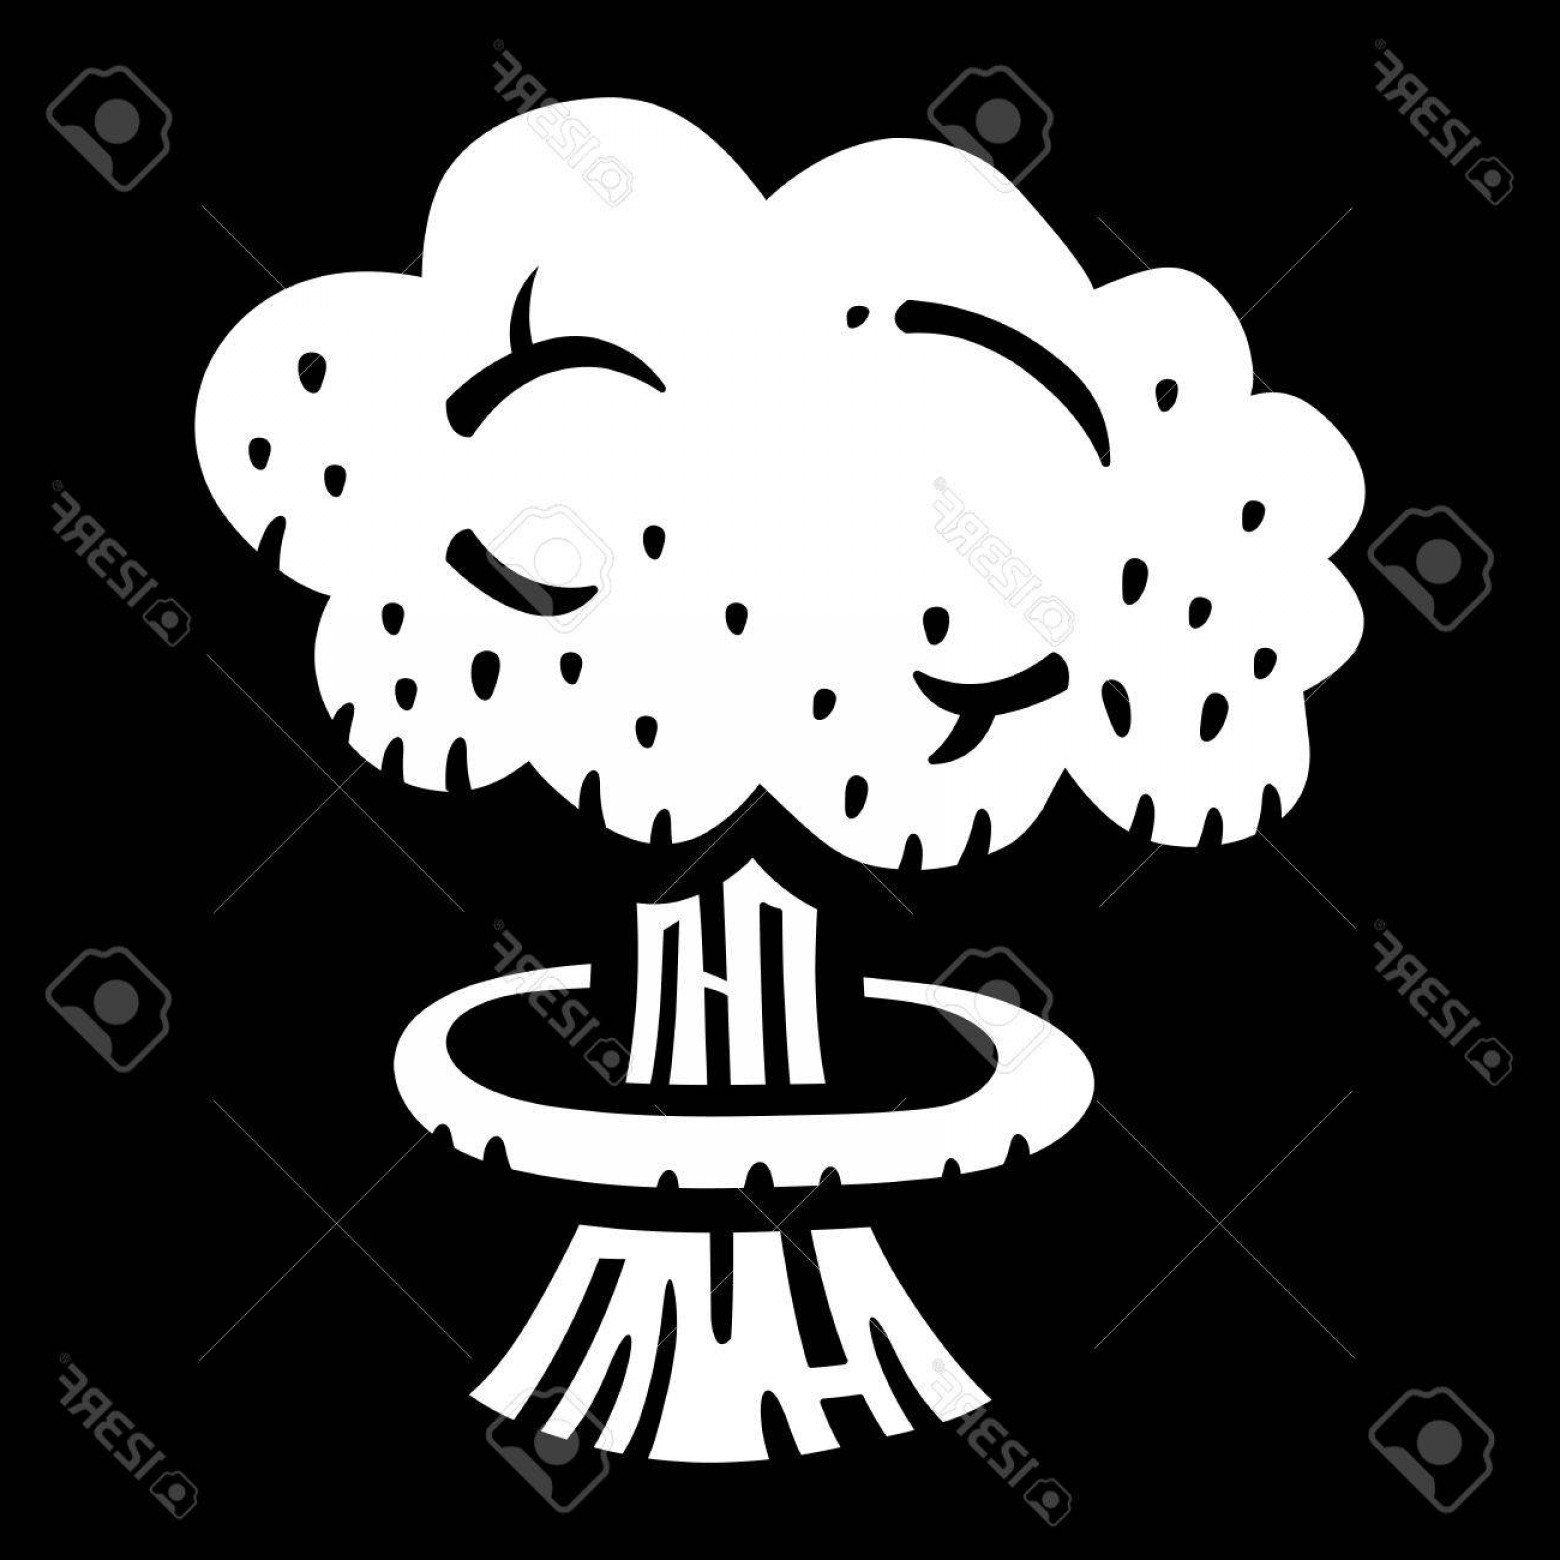 Atomic Vector Coud: Photostock Vector Mushroom Cloud Atomic Nuclear Bomb Explosion Fallout Vector Icon